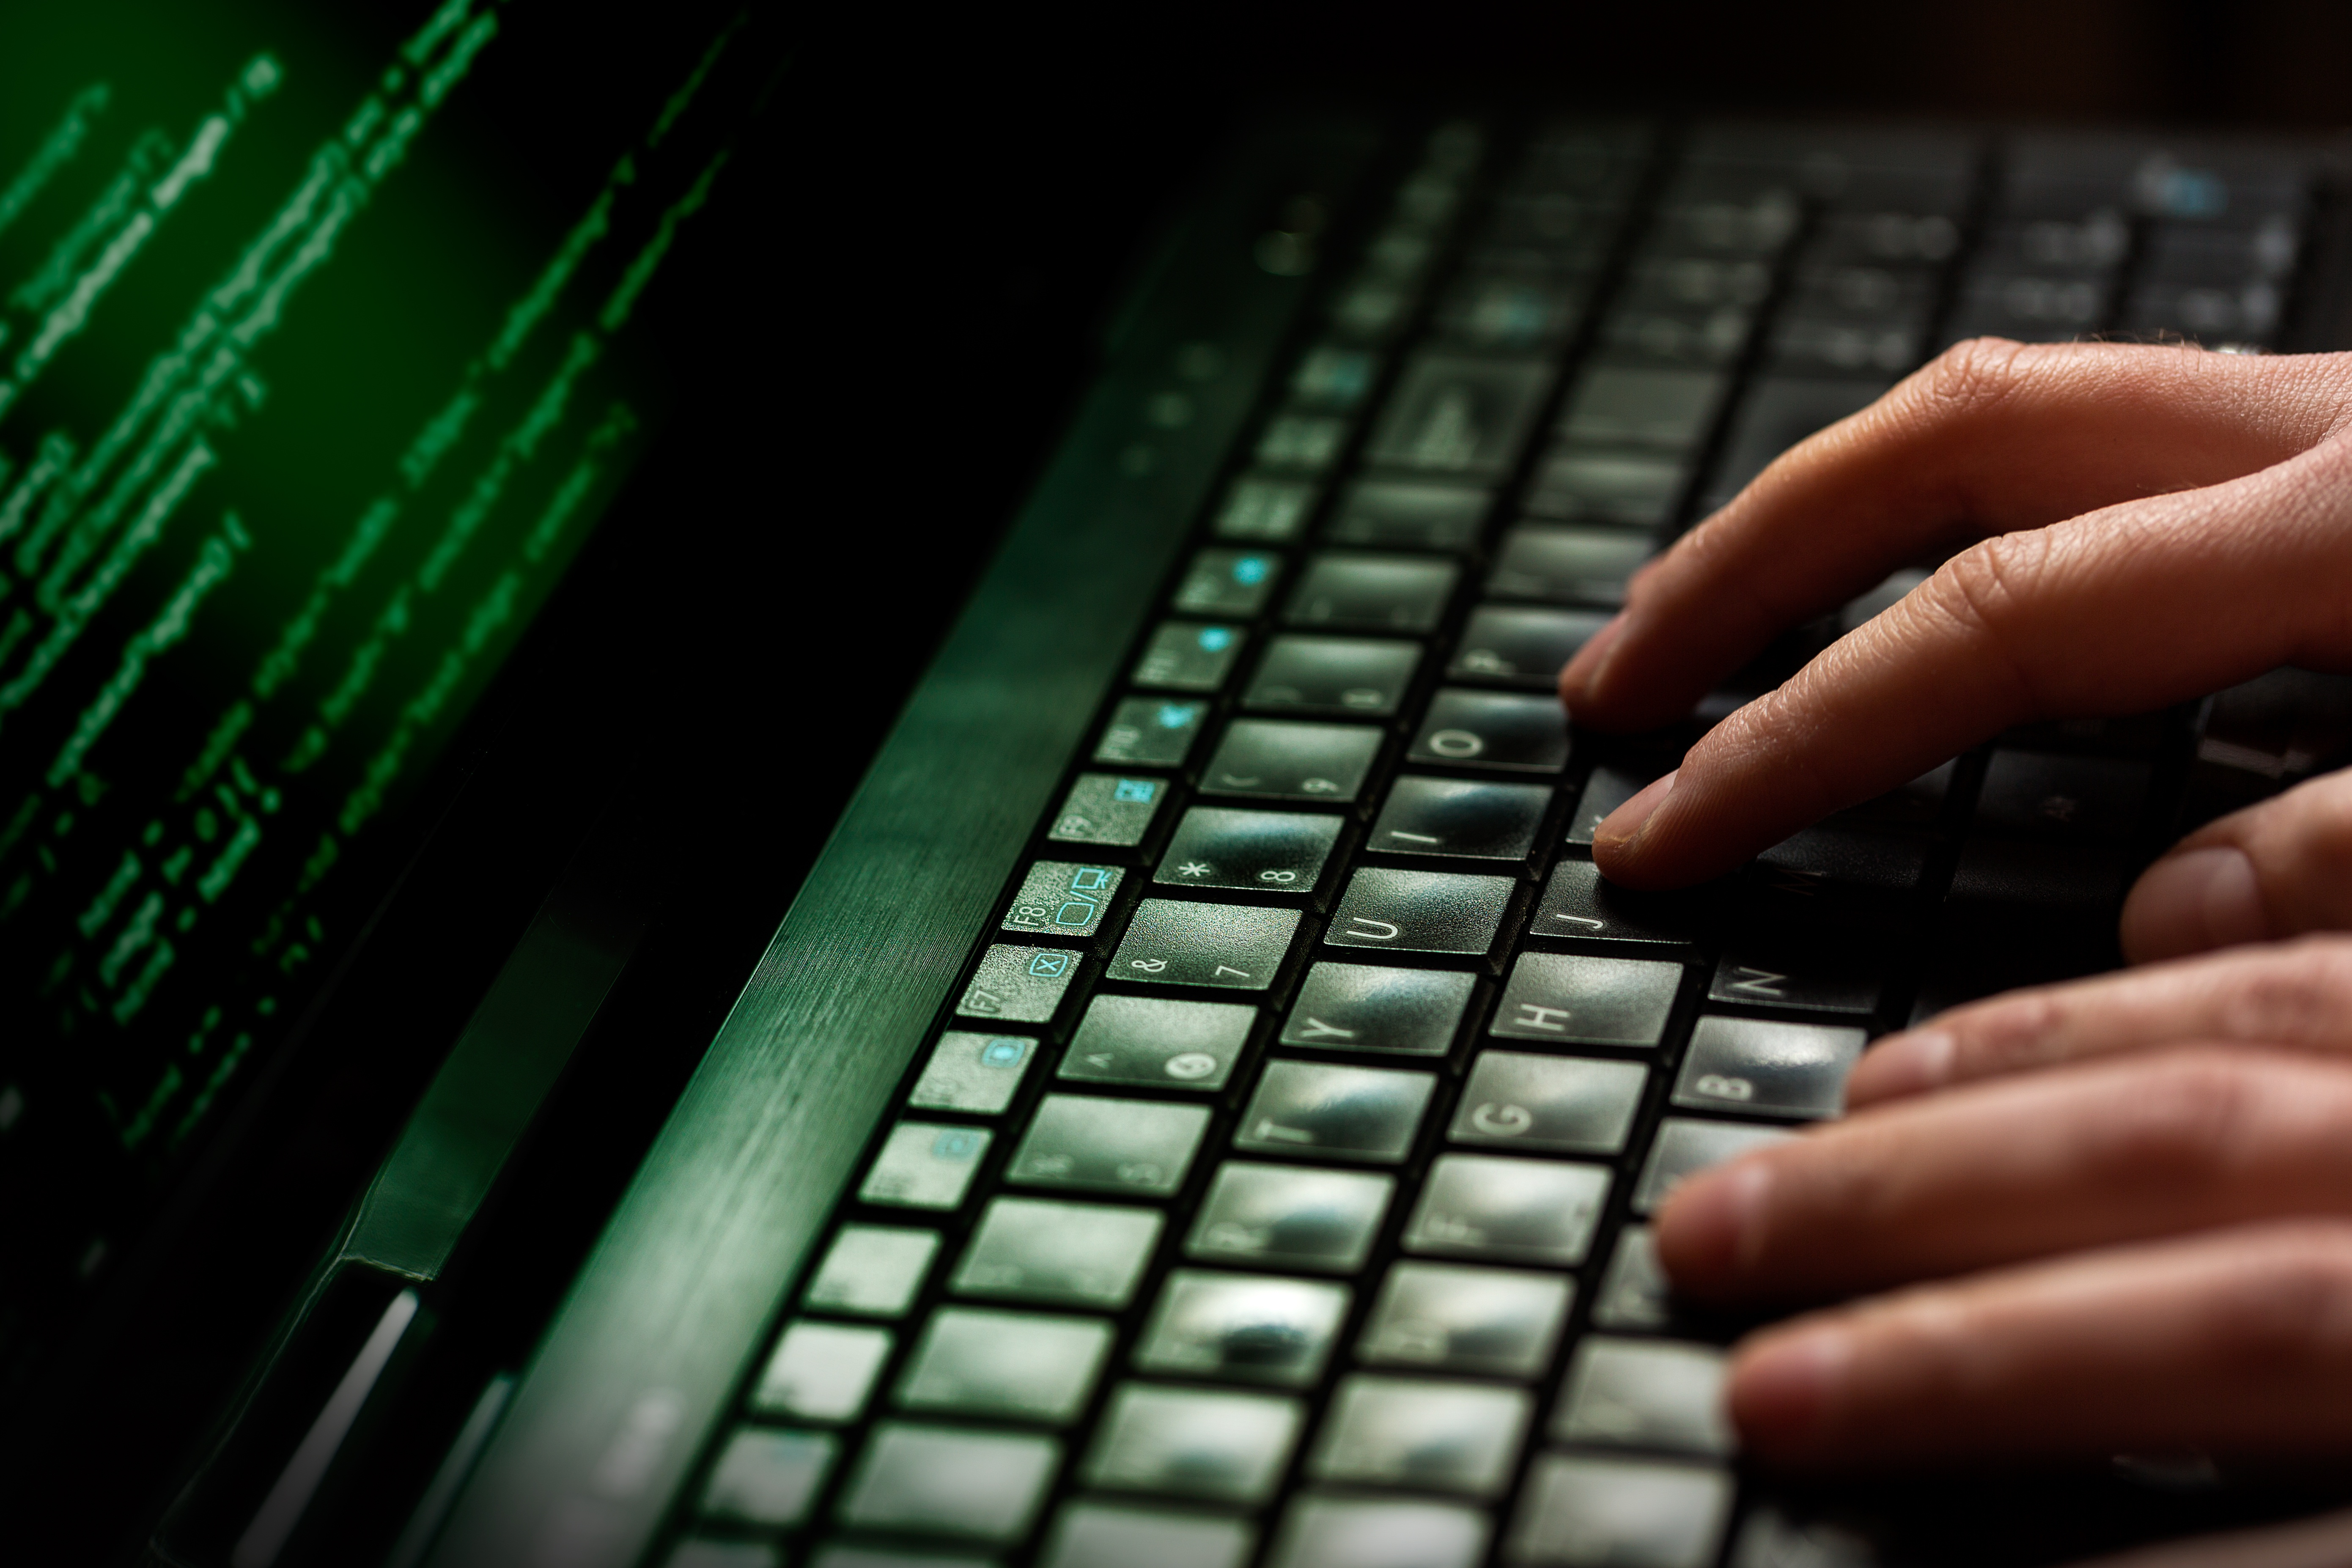 4 Common Computer Security Threats That Could Hurt Your Company in 2018